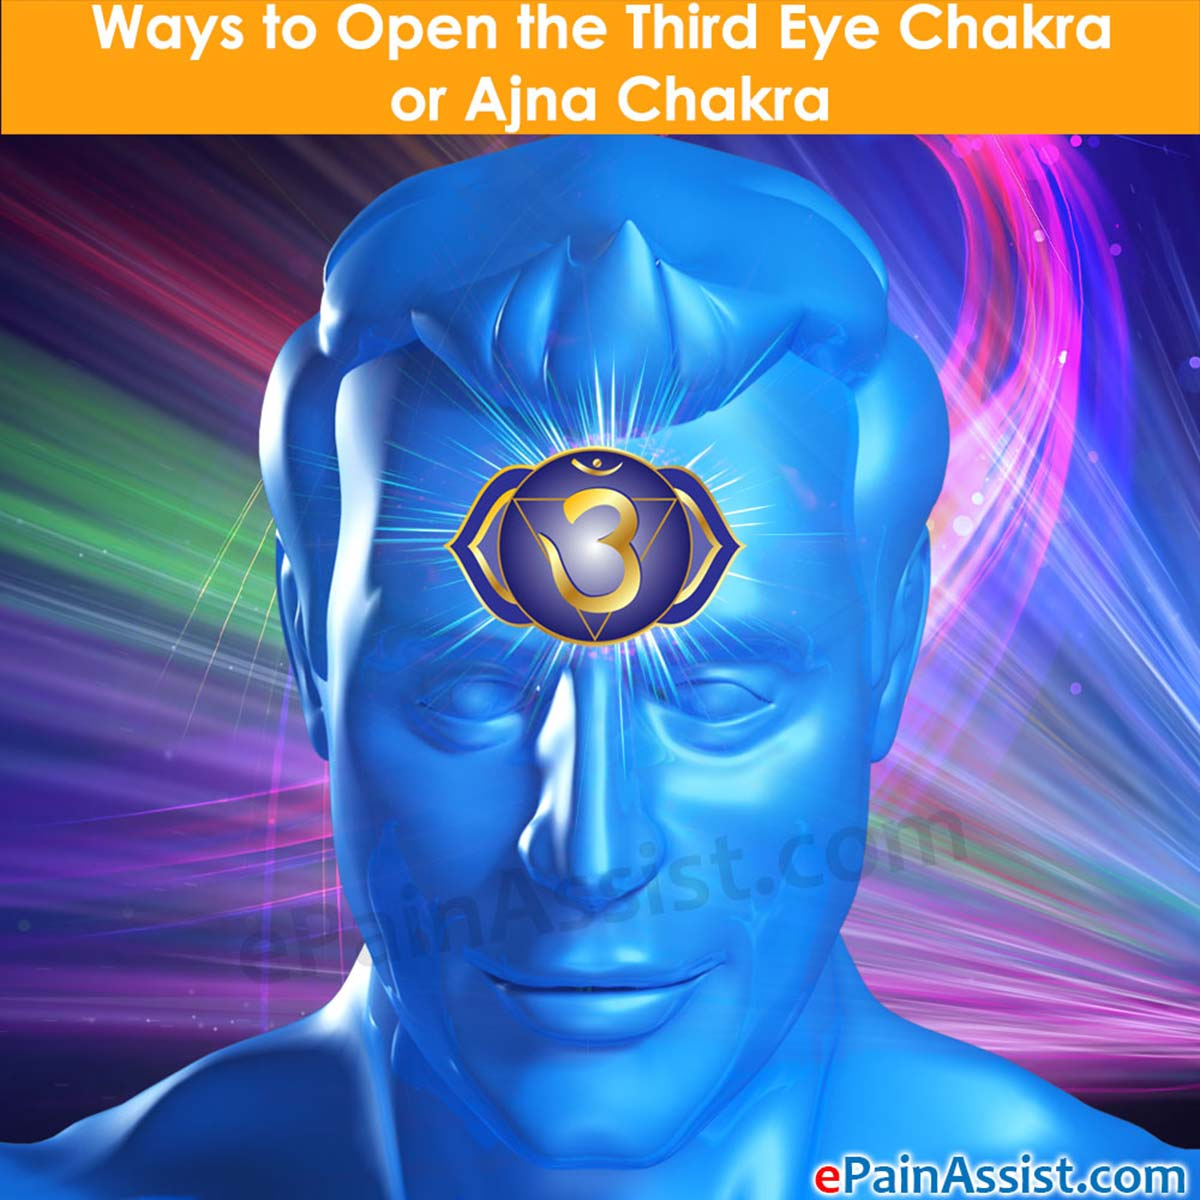 Ways to Open the Third Eye Chakra or Ajna Chakra